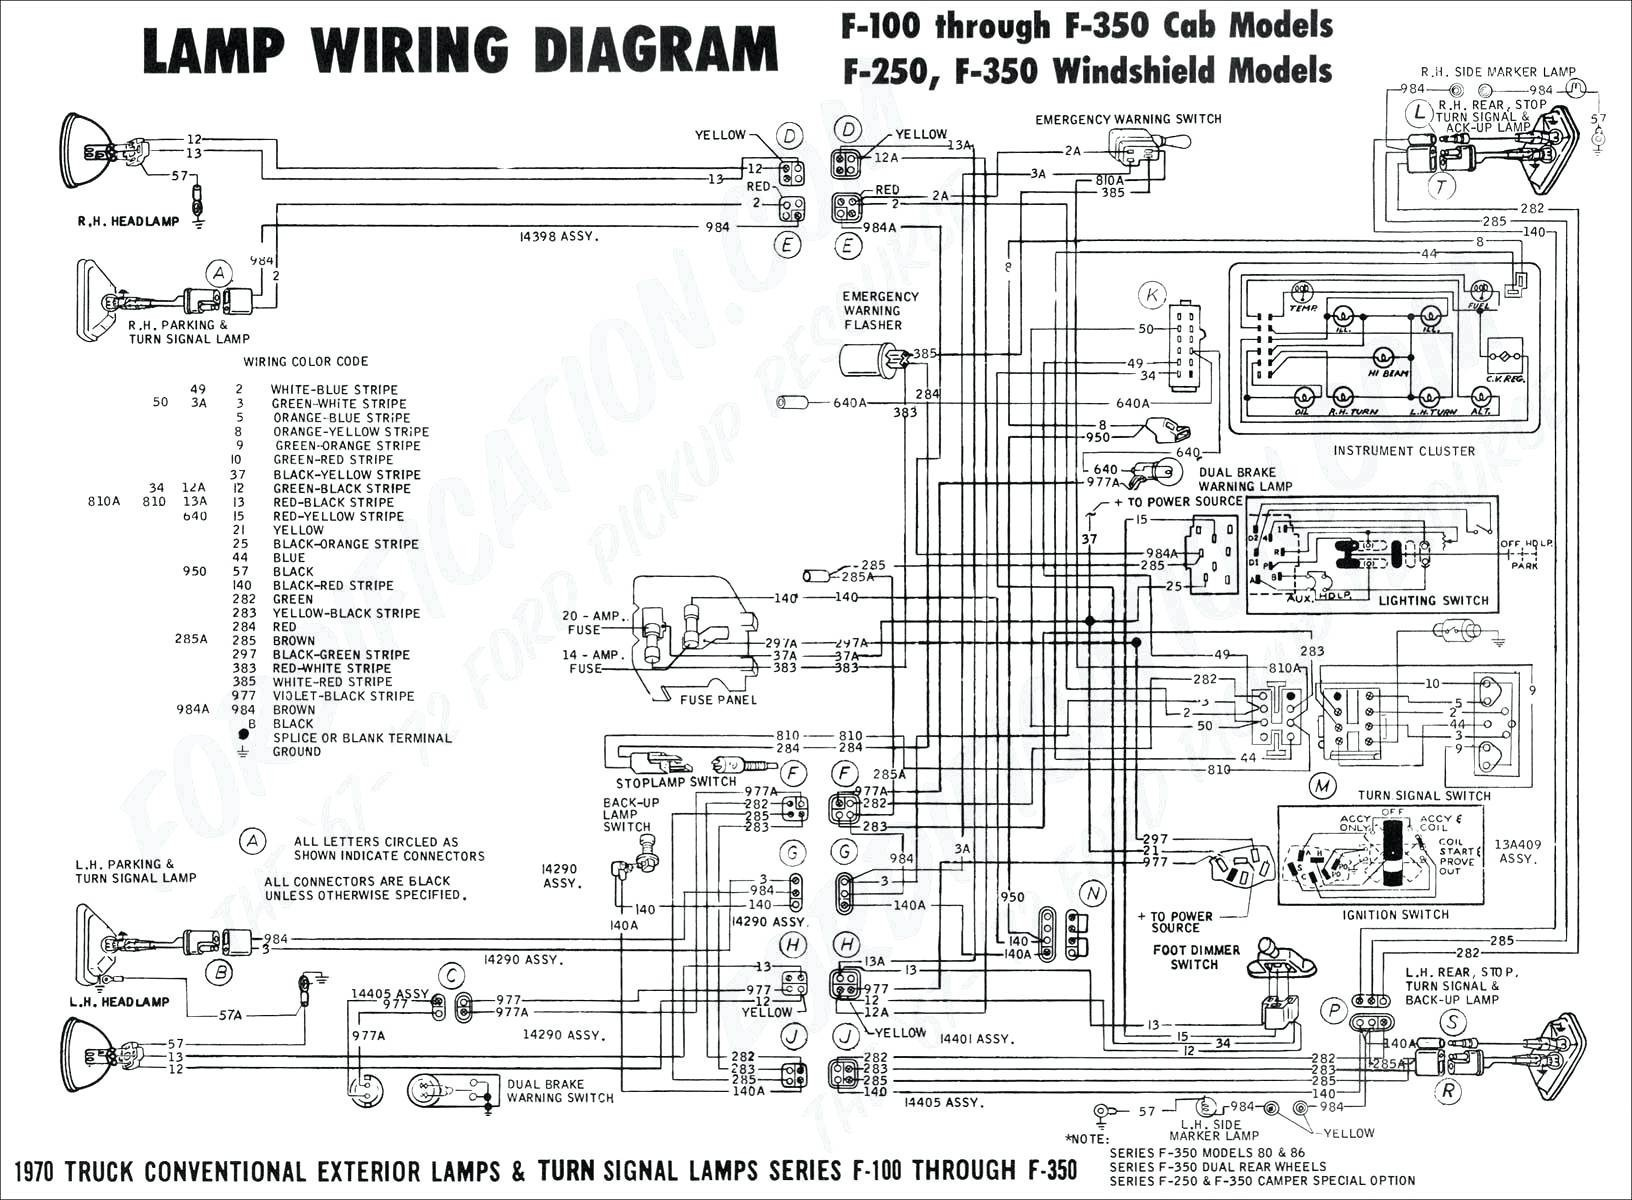 5 7 Vortec Engine Diagram 2 1999 5 7 Vortec Engine Diagram Wiring Diagram toolbox Of 5 7 Vortec Engine Diagram 2 5 3 Vortec Engine Diagram Wiring Diagram Inside